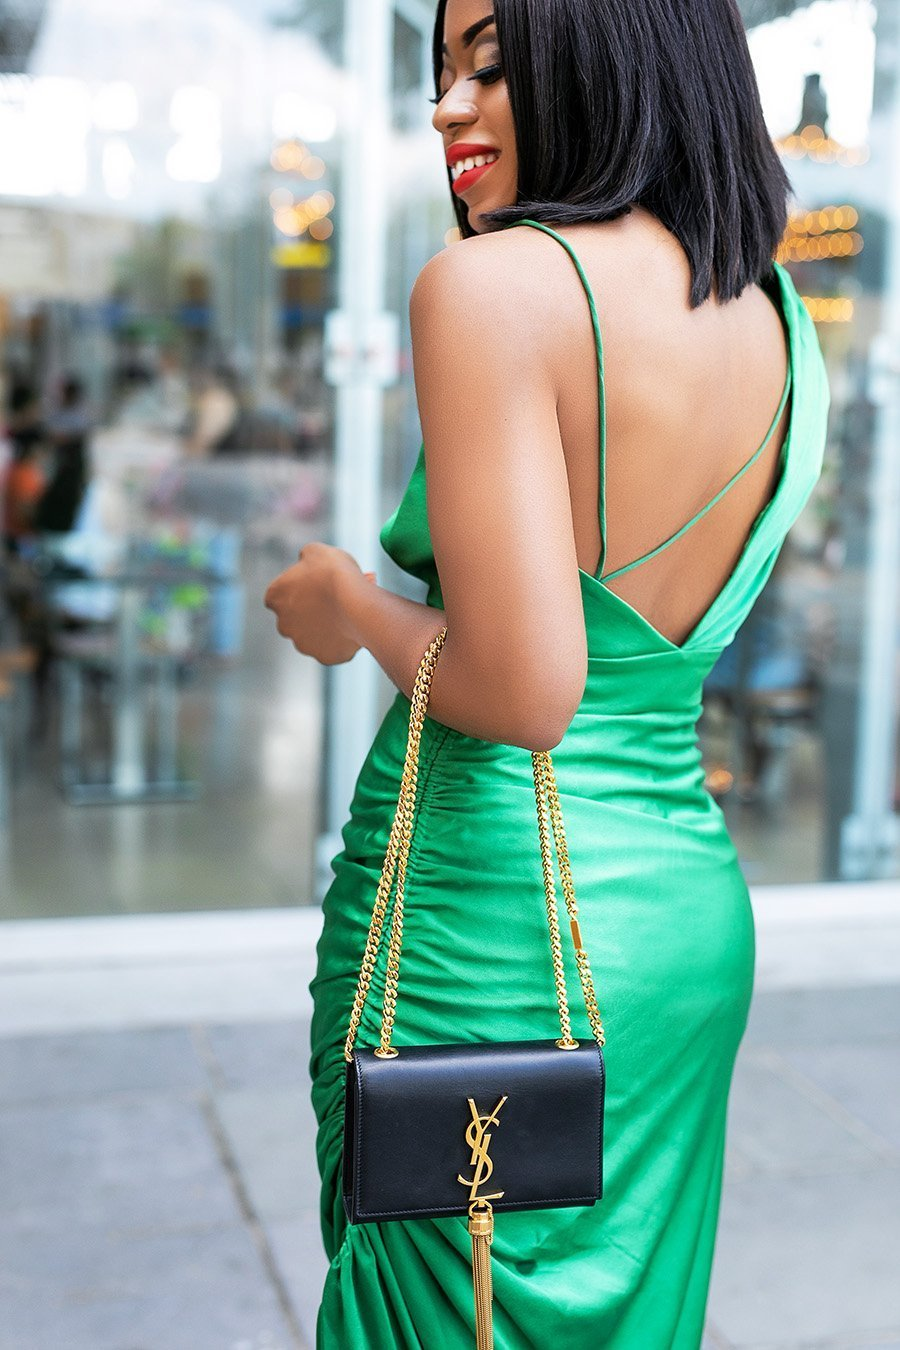 fashion-blogger-Stella-Adewunmi-of-Jadore-Fashion-in-green-slip-dress-for-the-holiday